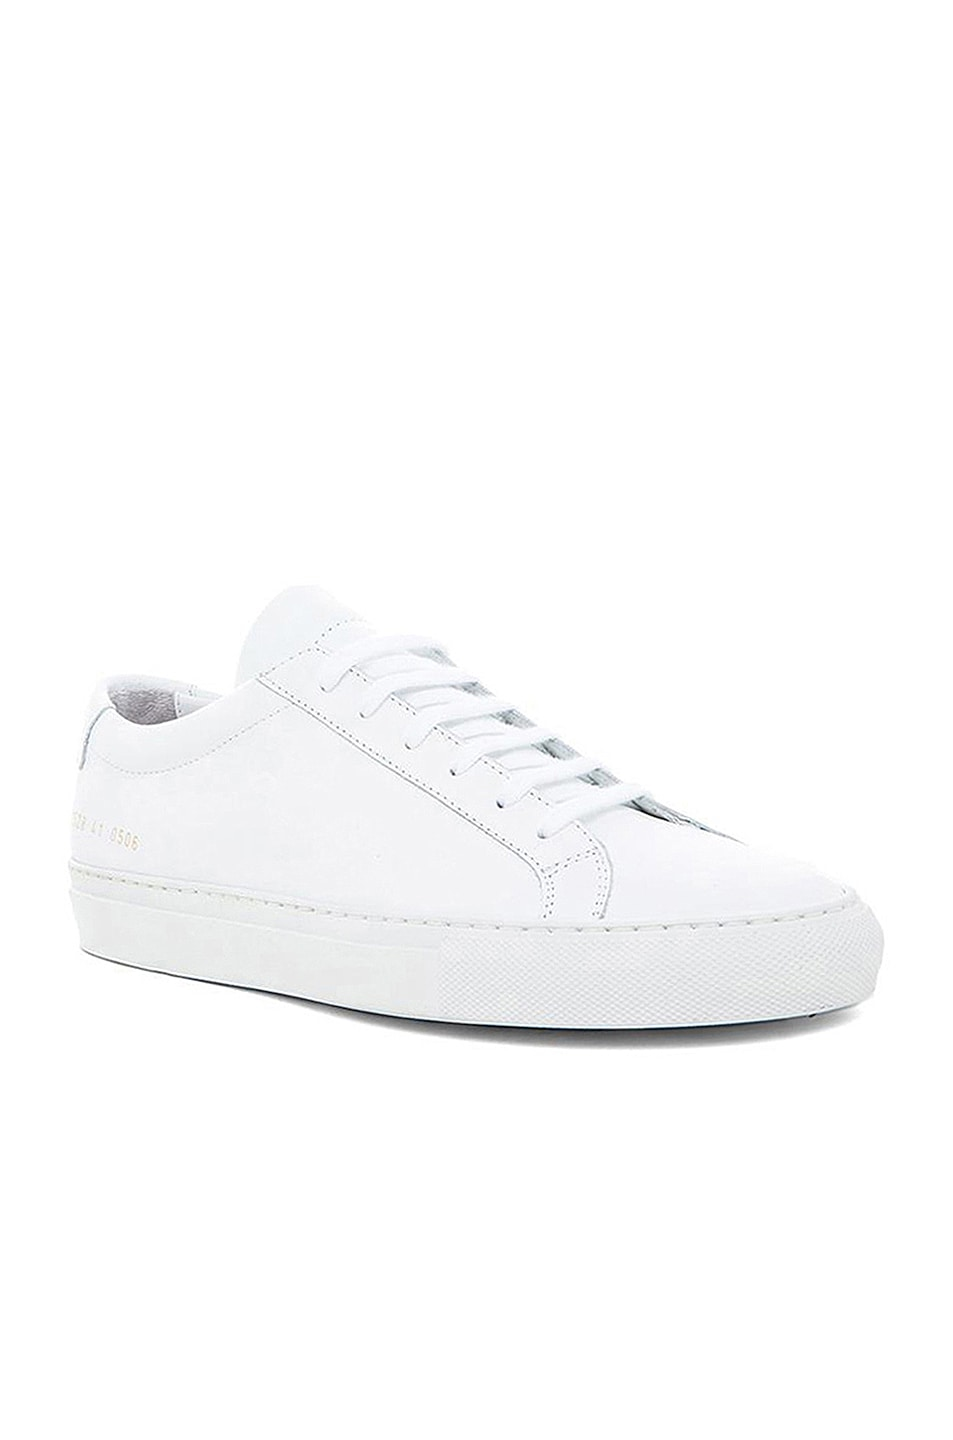 Image 2 of Common Projects Original Leather Achilles Low in White